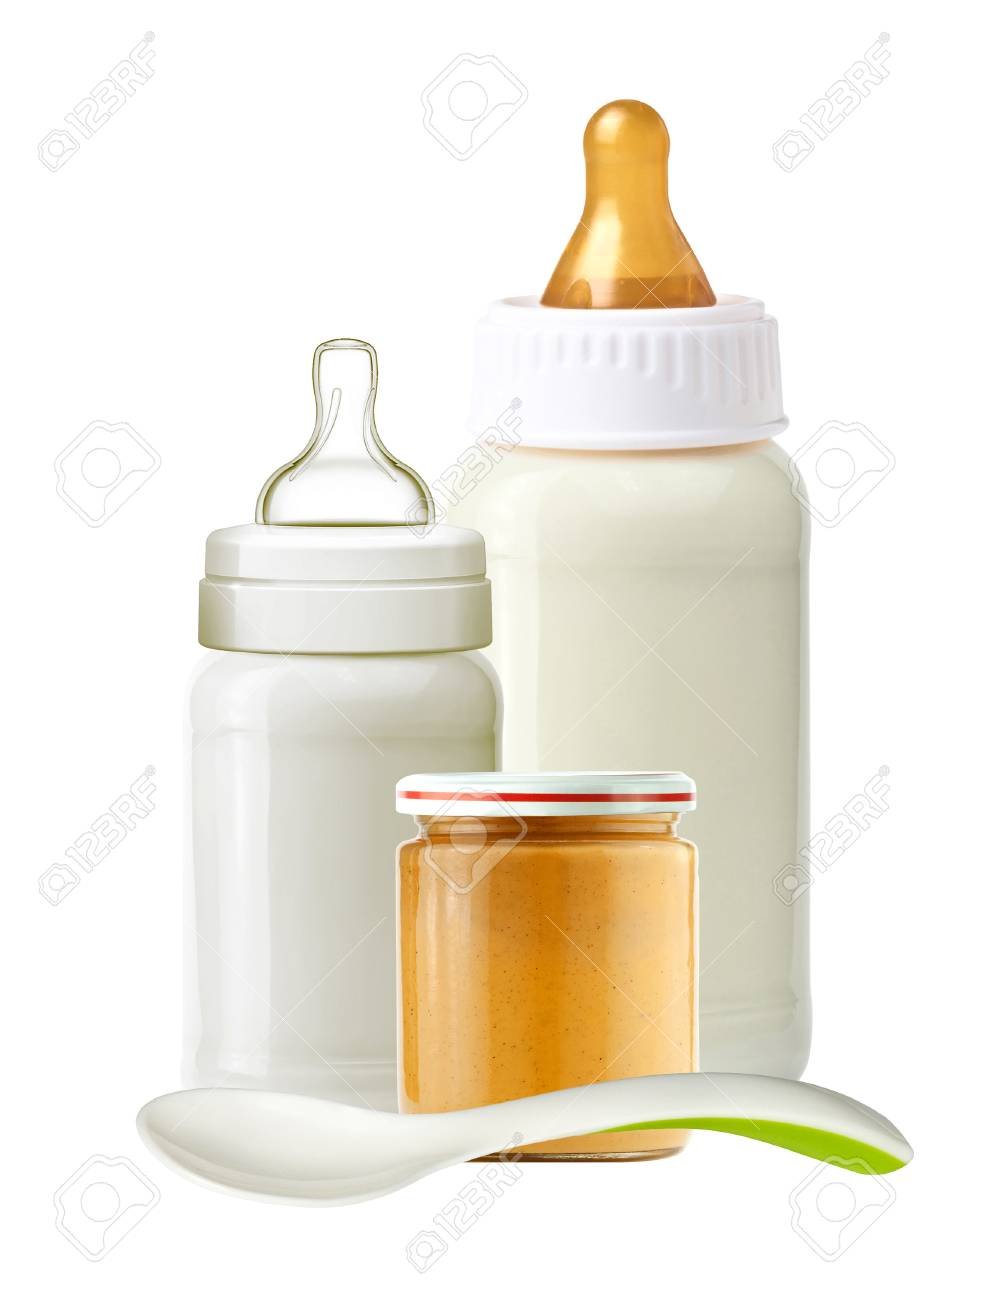 Babyflasche Glas Stock Photo